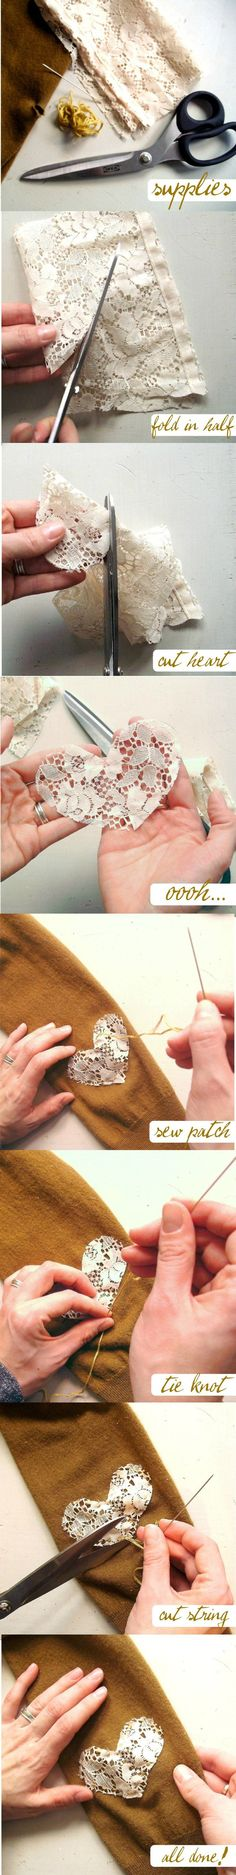 27 Useful Fashionable DIY Ideas Scarves w lace (use doilies?) Plastic spoon nl Add doilies to shirts Much more